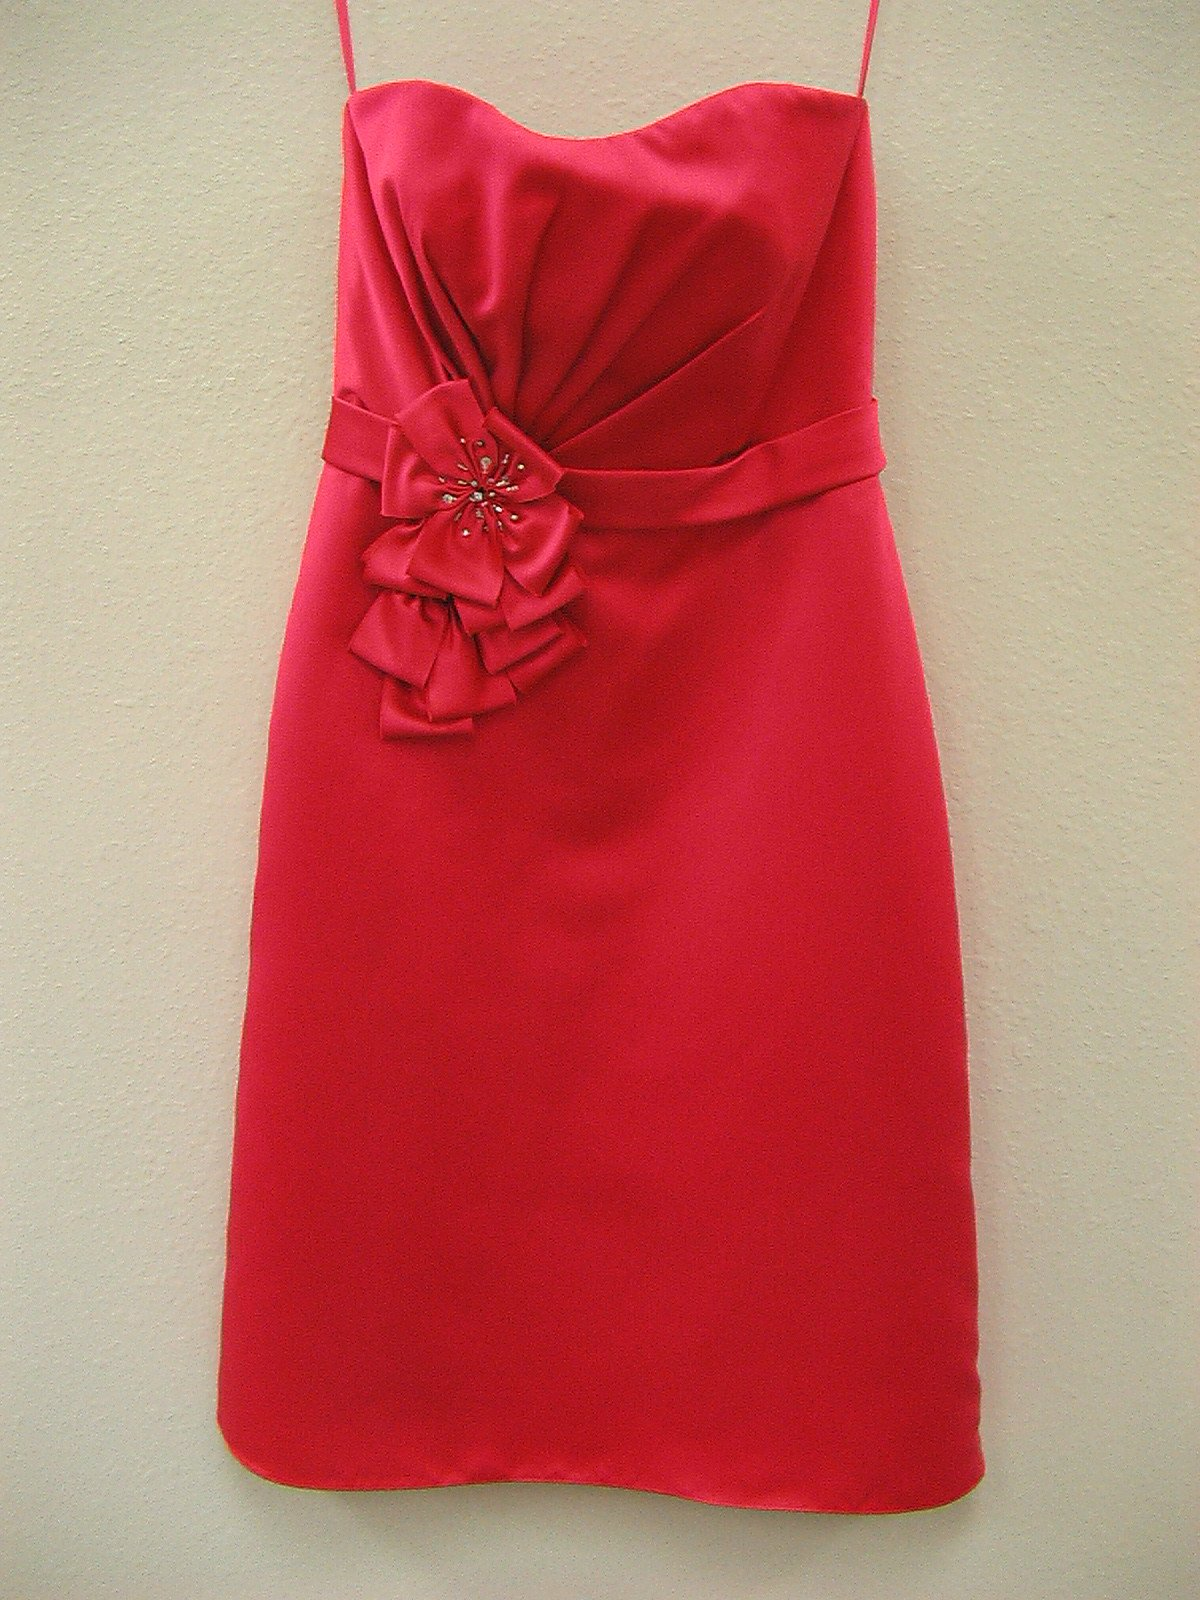 Allure 1258 Hot Pink Size 8 In Stock Bridesmaid Dress - Tom's Bridal